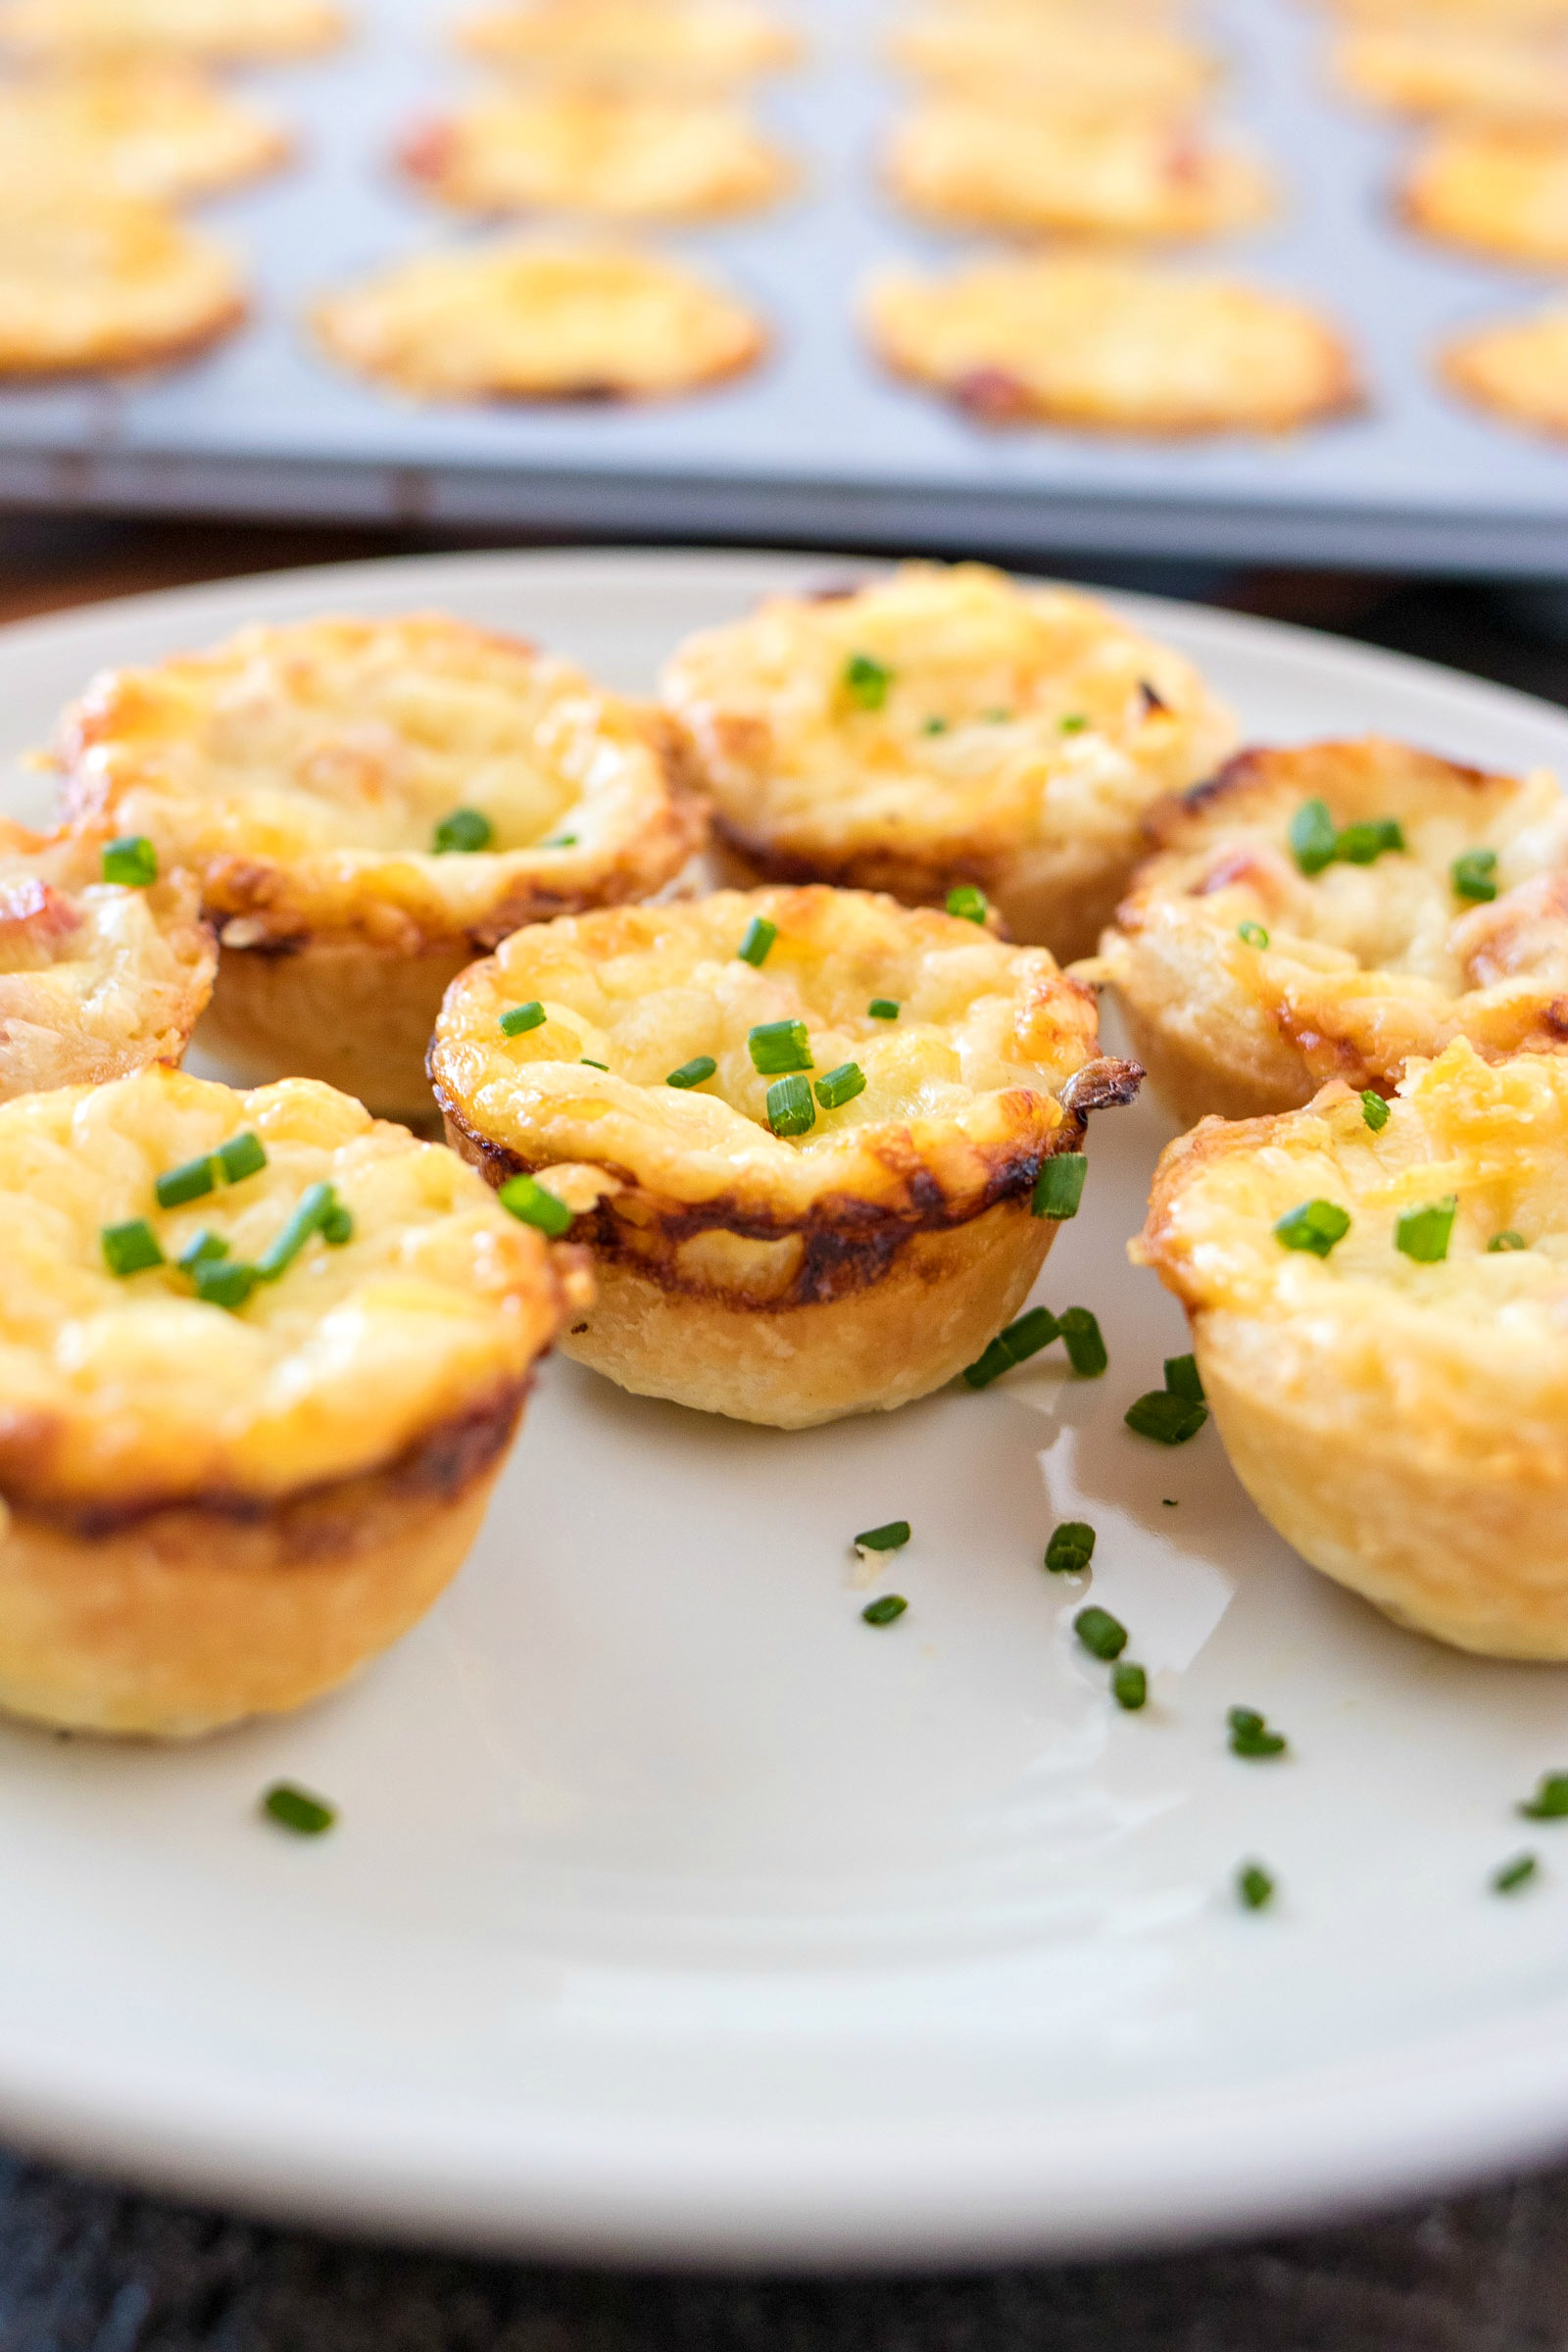 Mini Ham and Cheese Quiche with Caramelized Onions - A mini, buttery pastry crust filled with a mixture of eggs, cream, diced ham, gruyere cheese, and caramelized onions. These small little quiche are perfect for serving at parties and brunches.